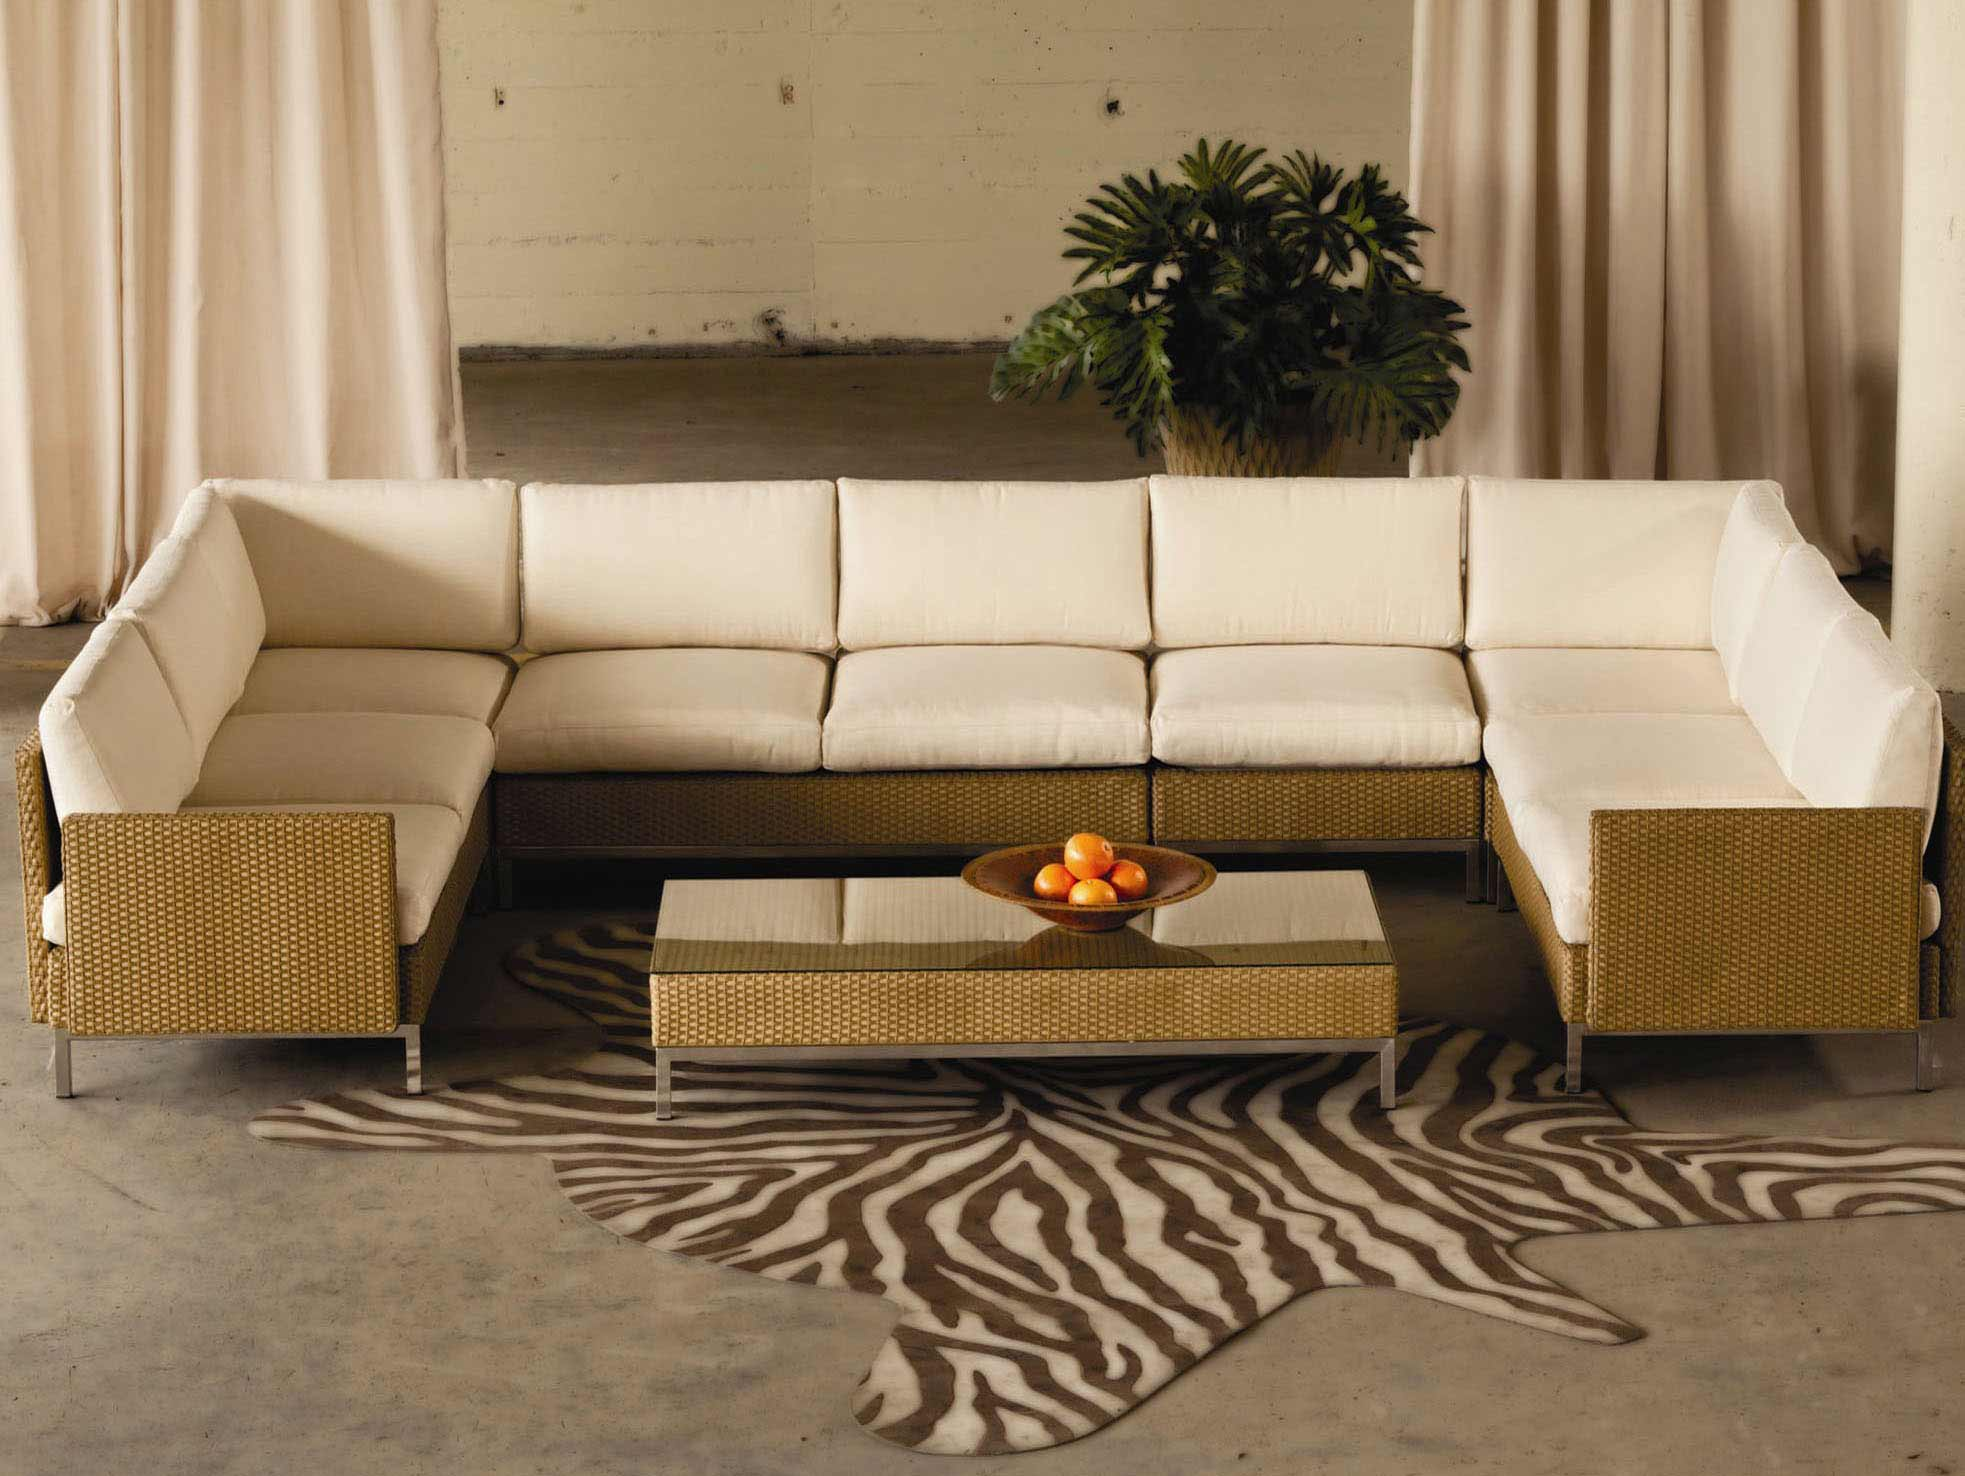 Lloyd Flanders Elements Build Your Own Sofa Coffee Table Not Included Elementsset2 Lloyd